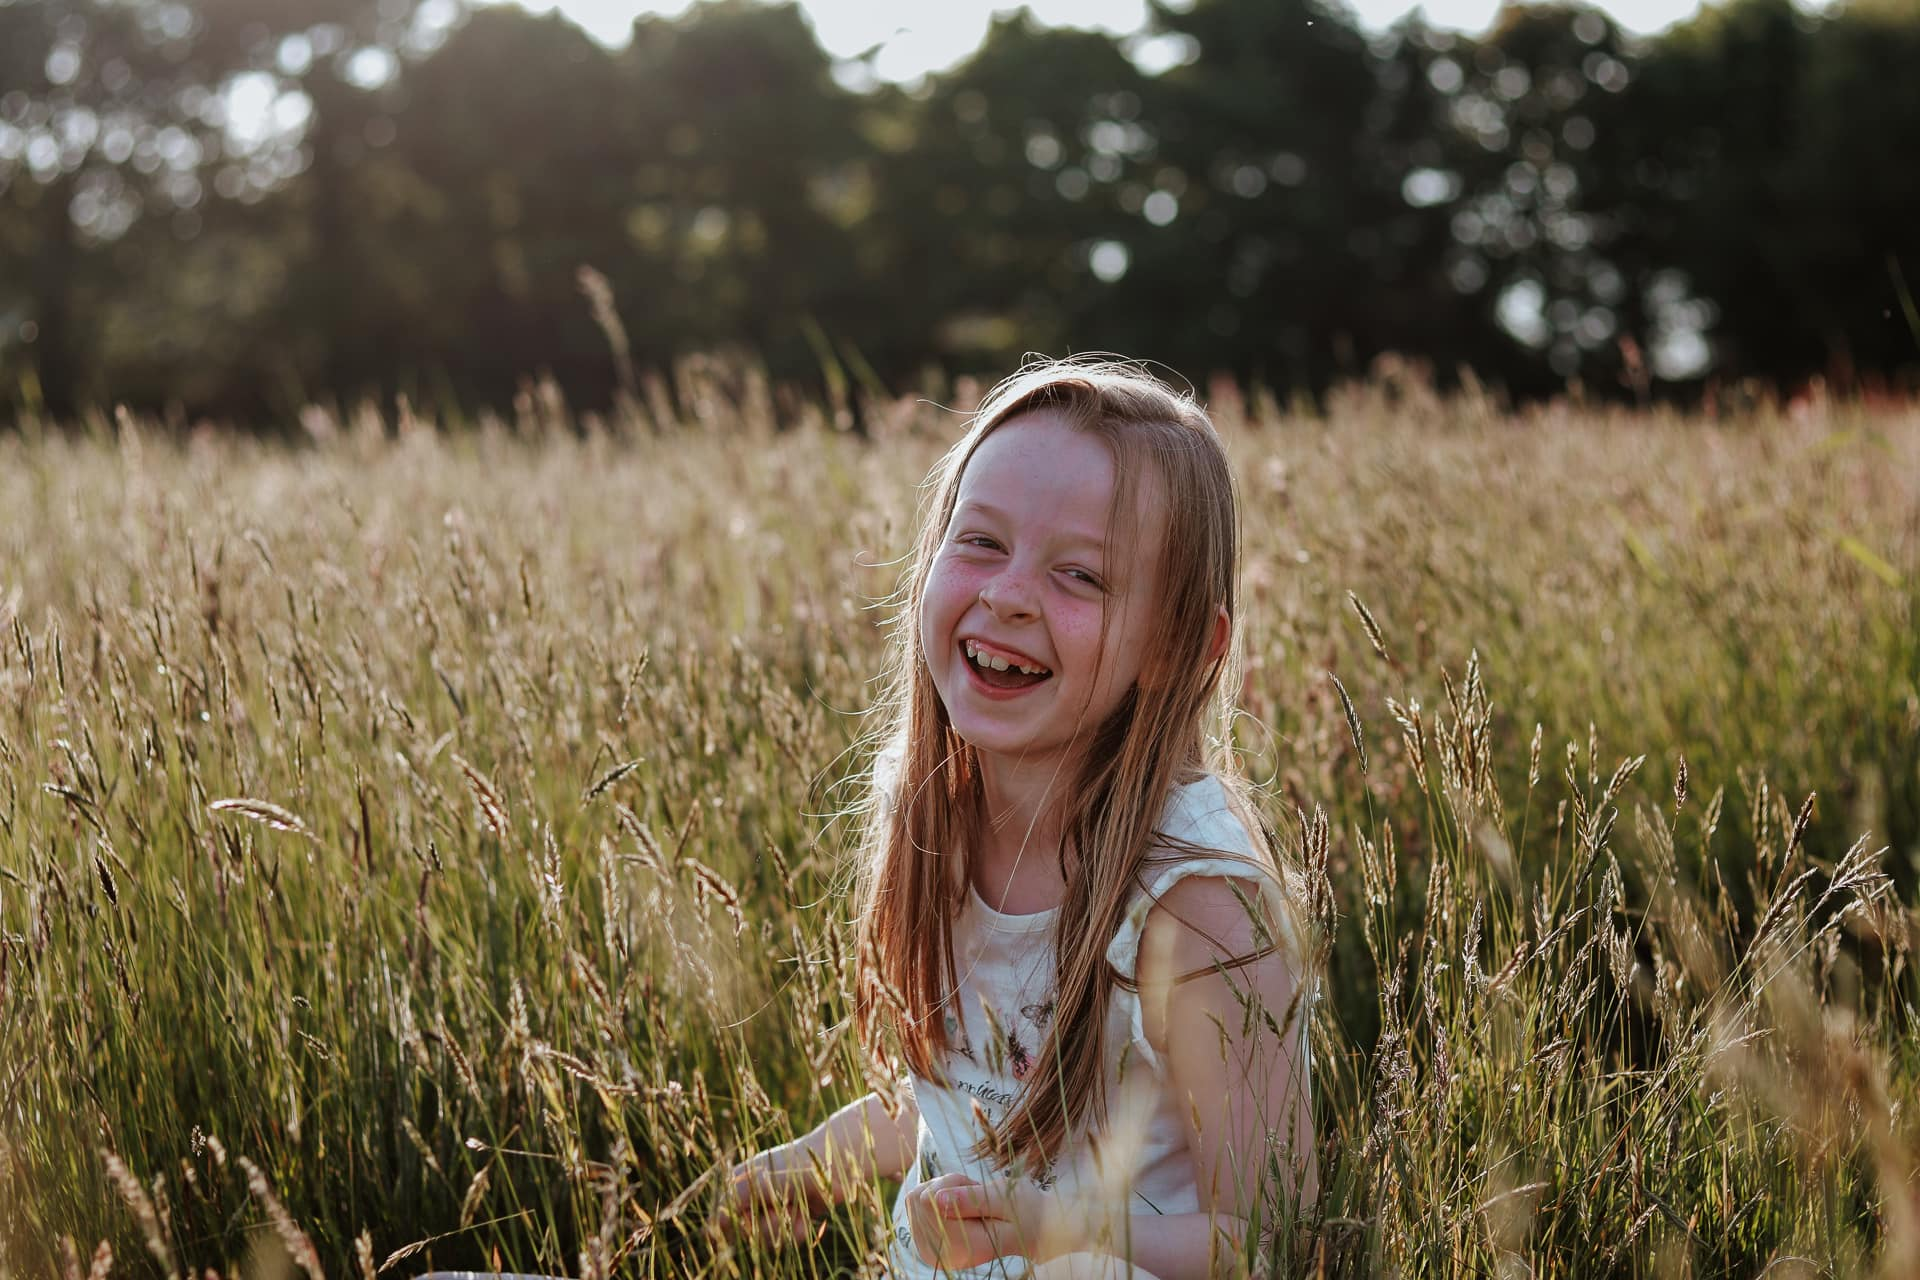 Young girl laughing in long grass in a sunny field